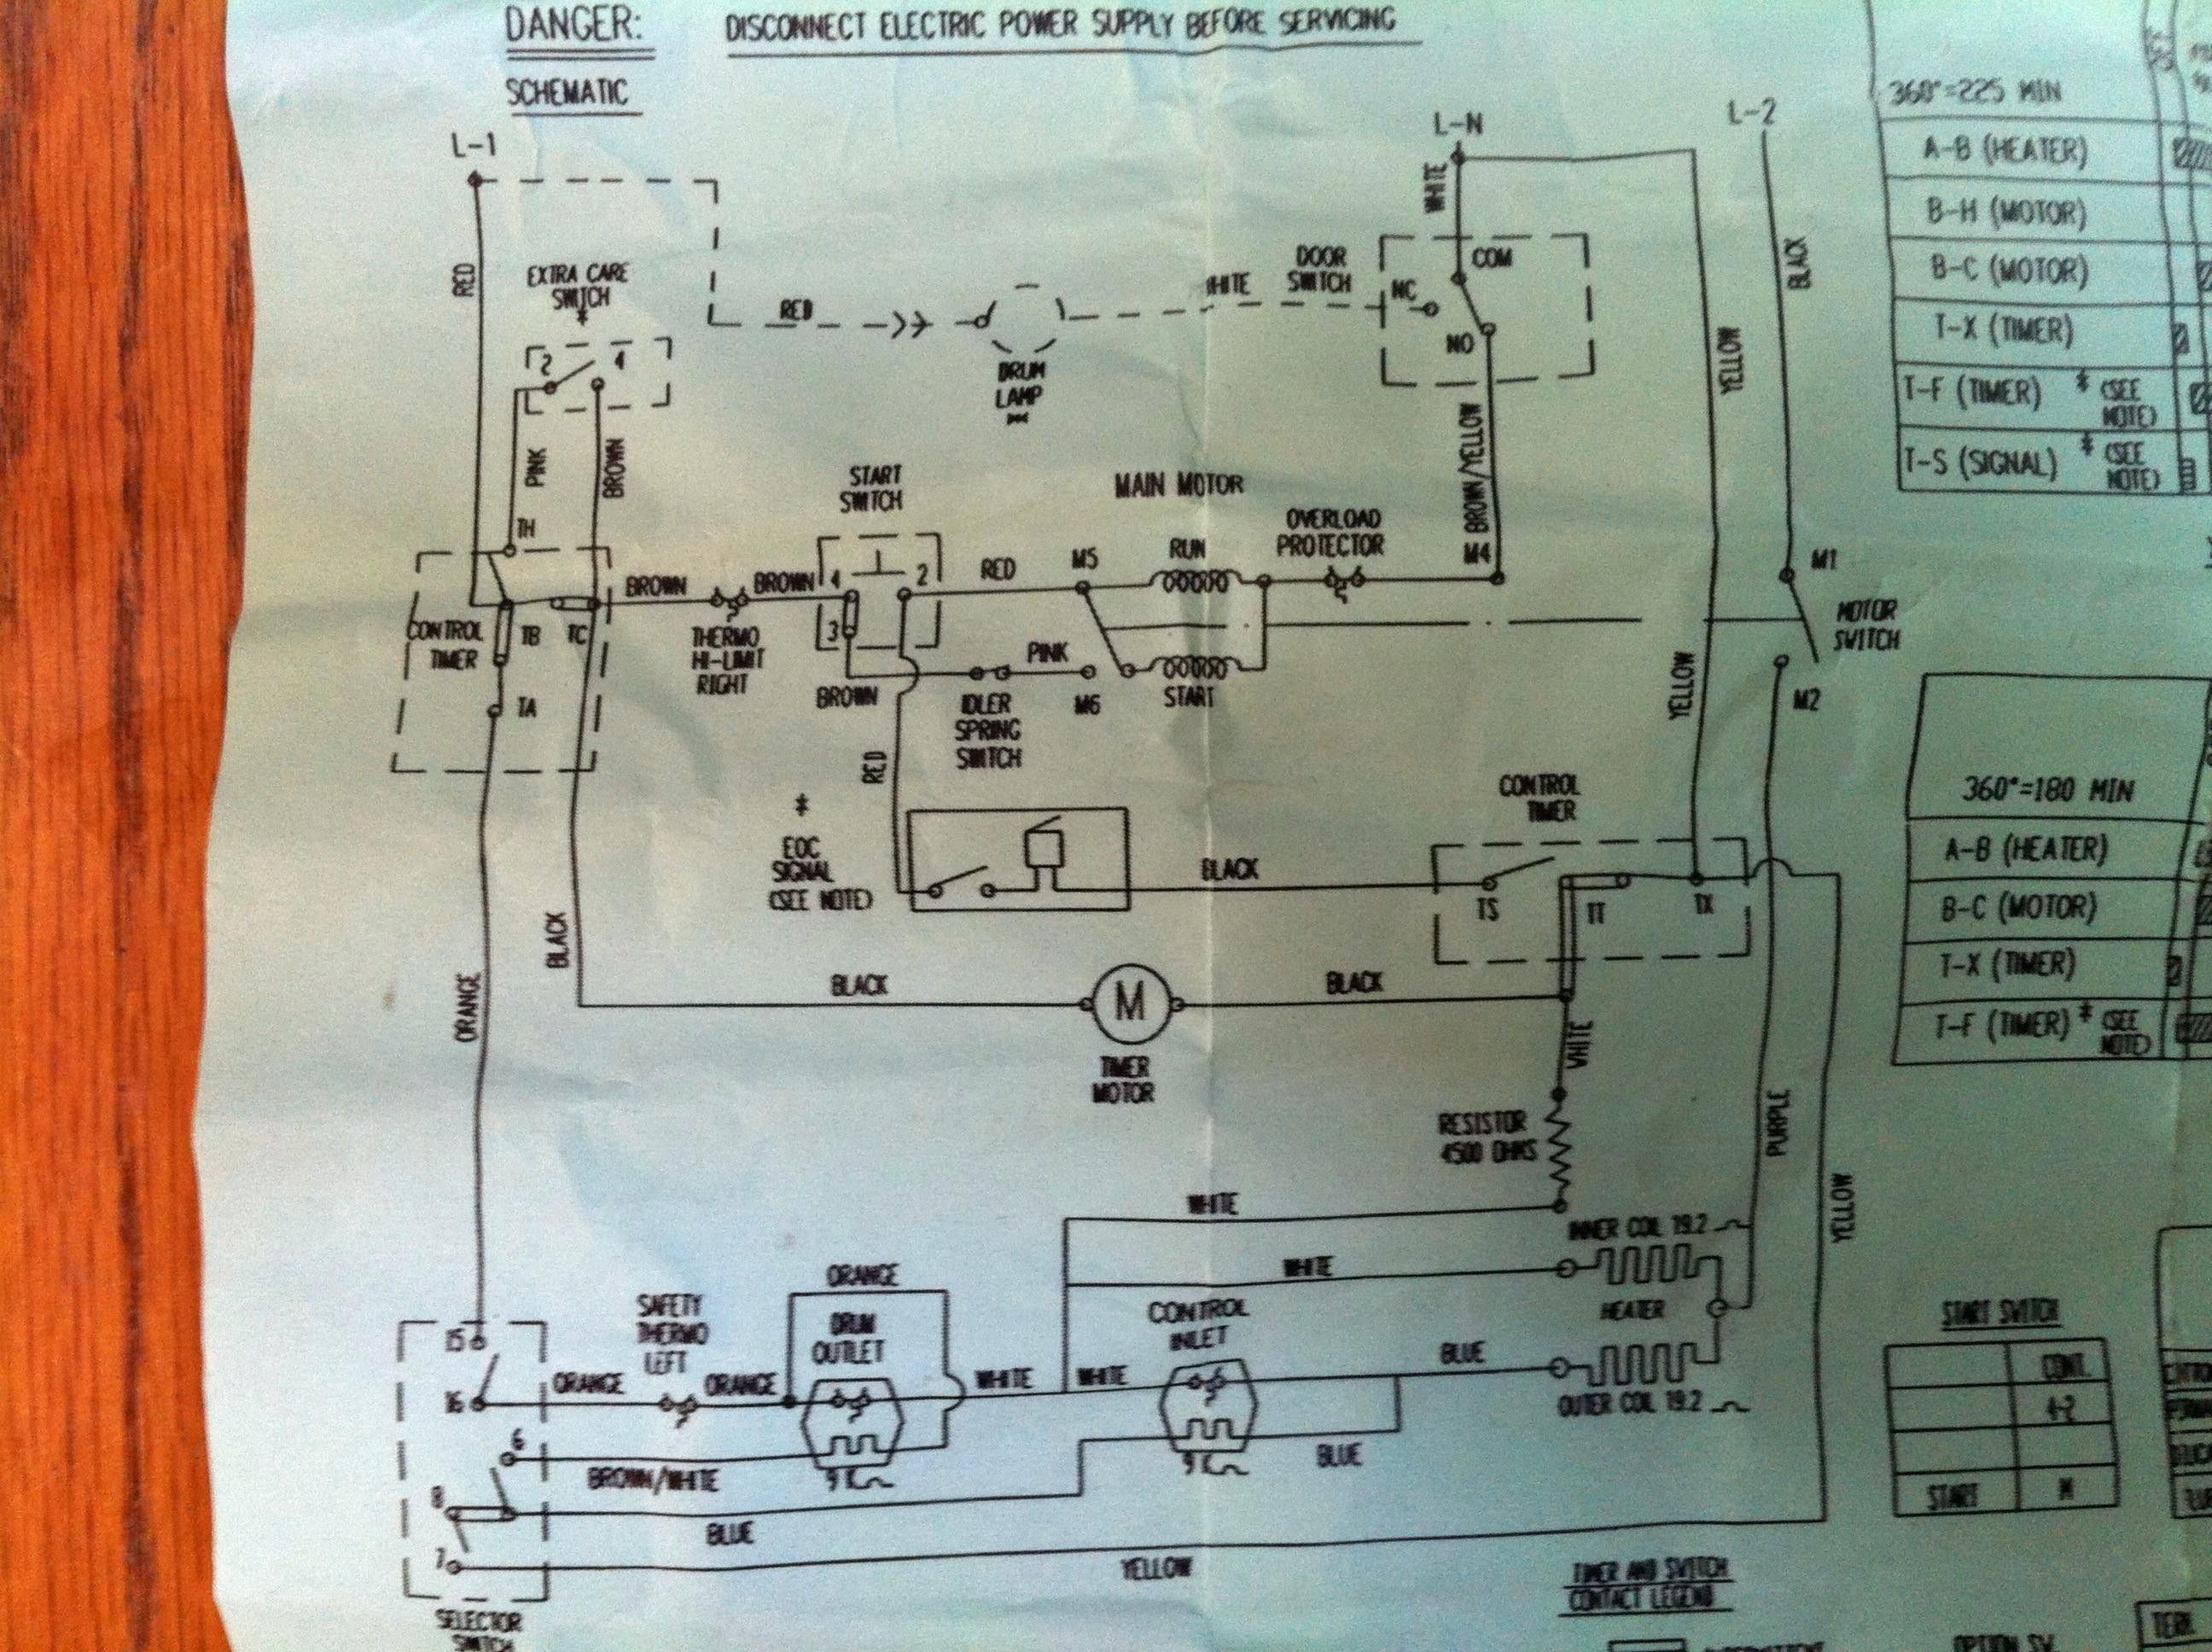 Wiring Diagram For 220 Volt Dryer Outlet Dryer outlet